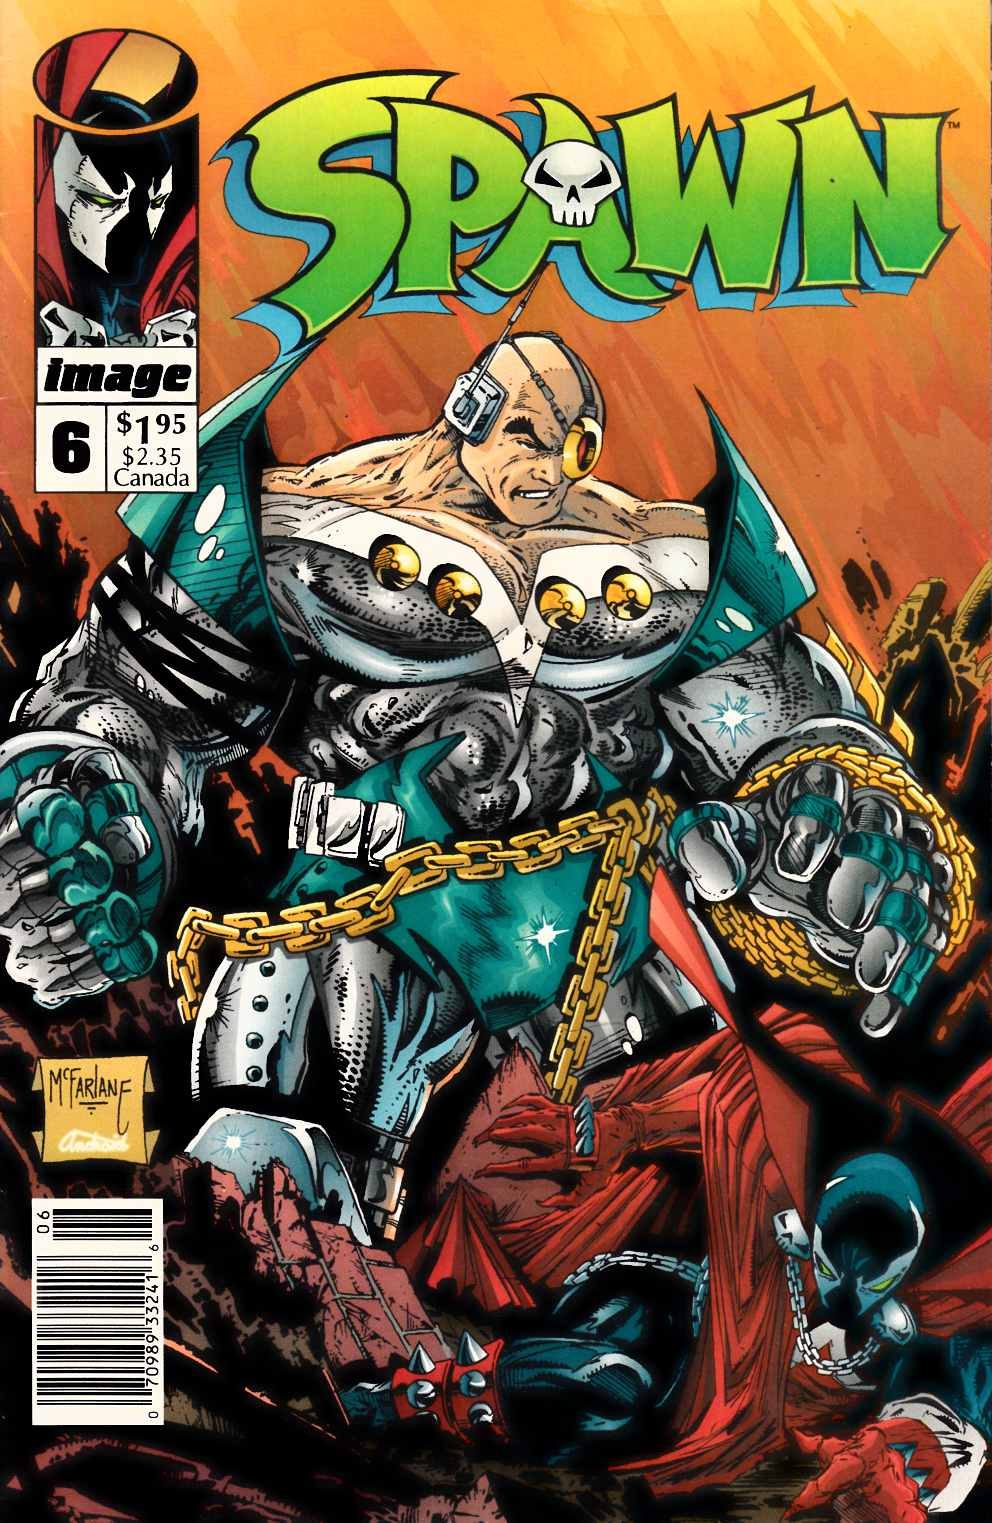 Spawn #6 Newsstand Edition Fine (6.0) [Image Comic] THUMBNAIL